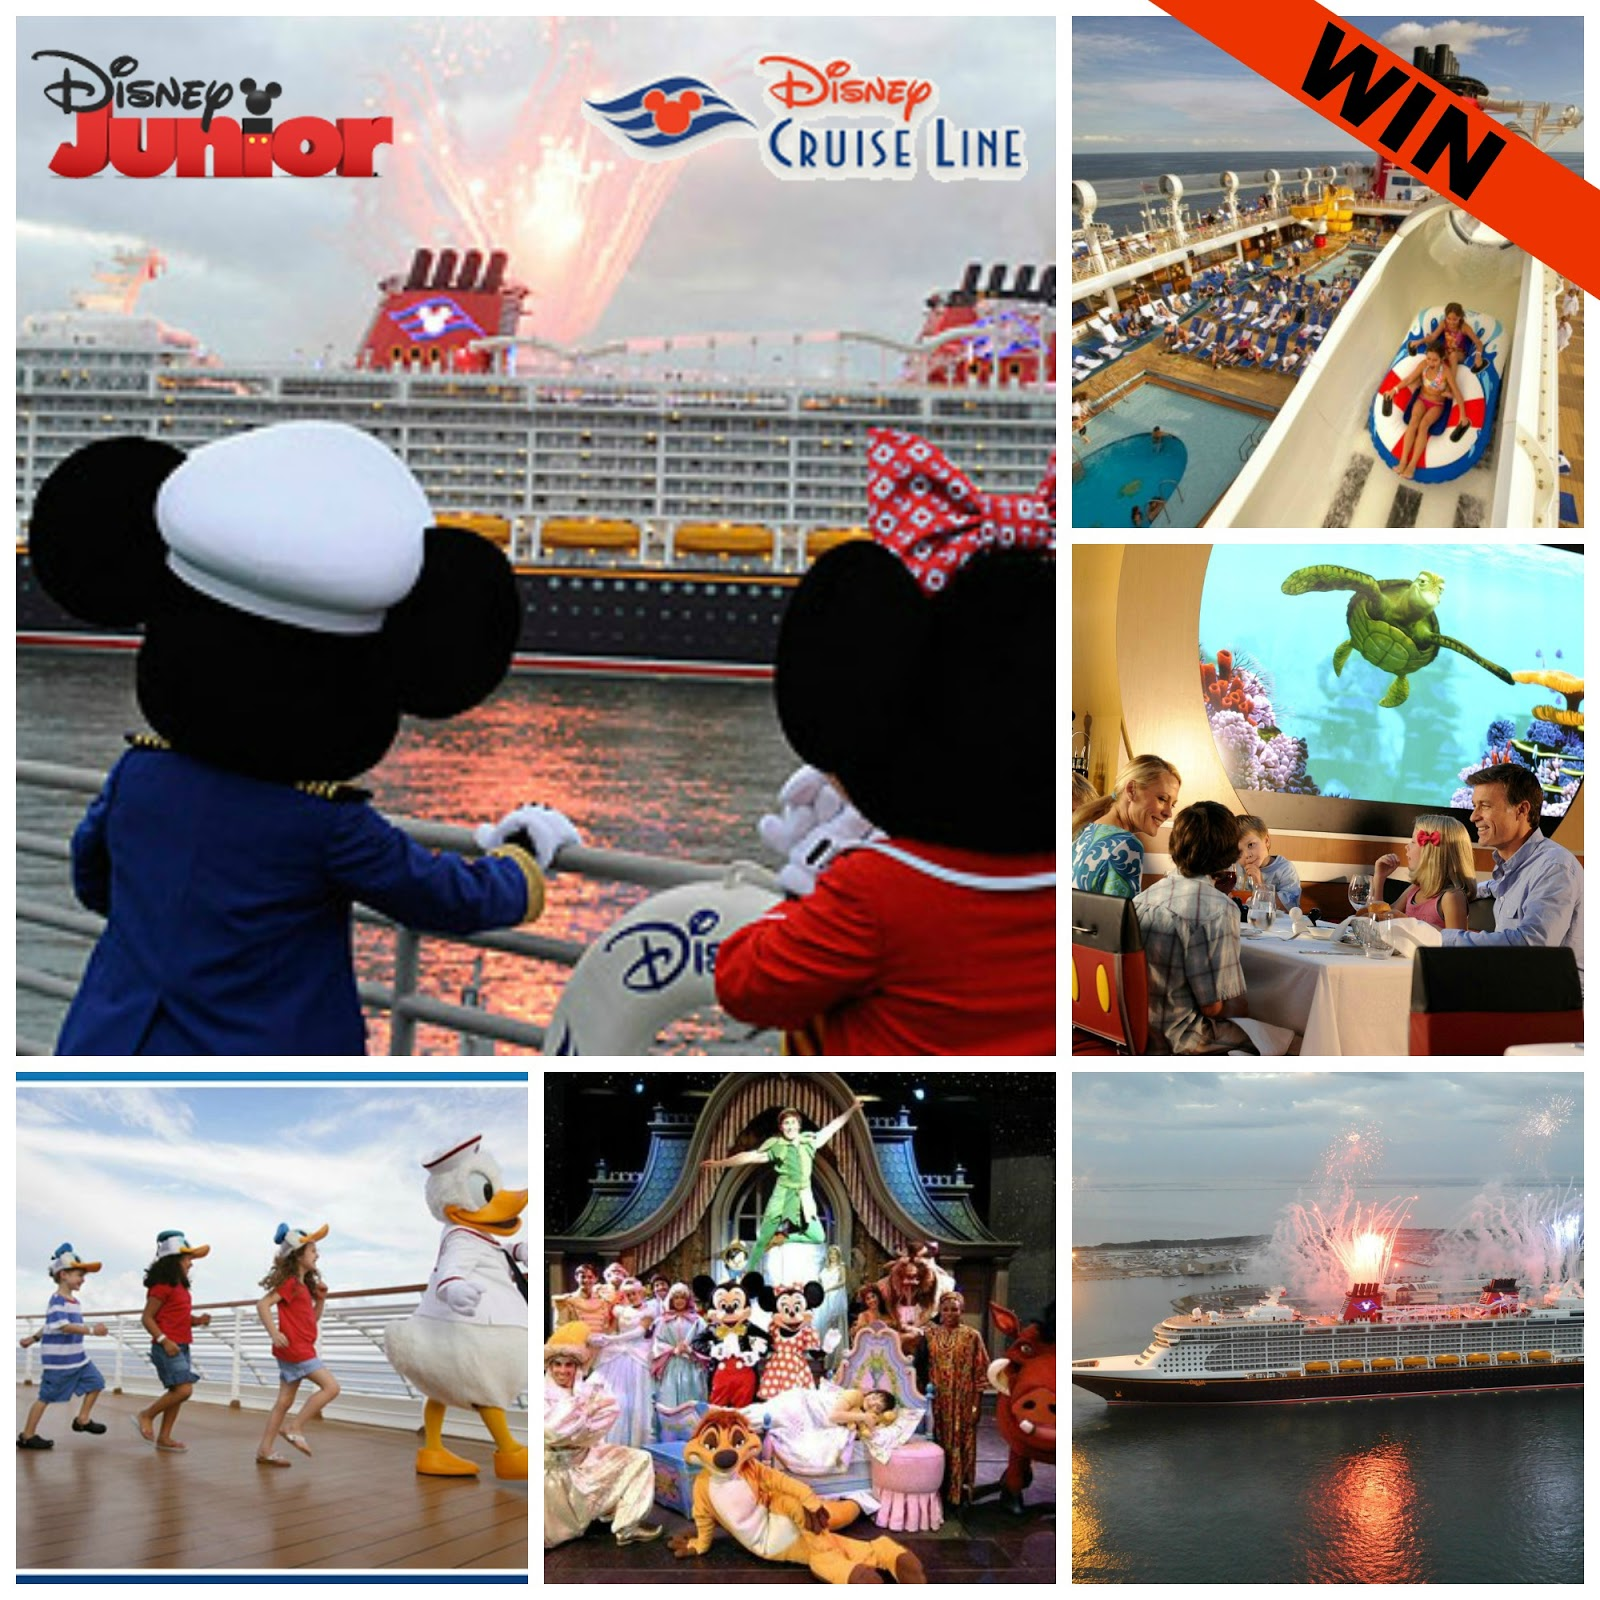 disney cruise essay contest Today disneycom launches the all-new secrets to a dream cruise vacation sweepstakes, which sounds pretty exciting and has us positively itching to get out of the office.